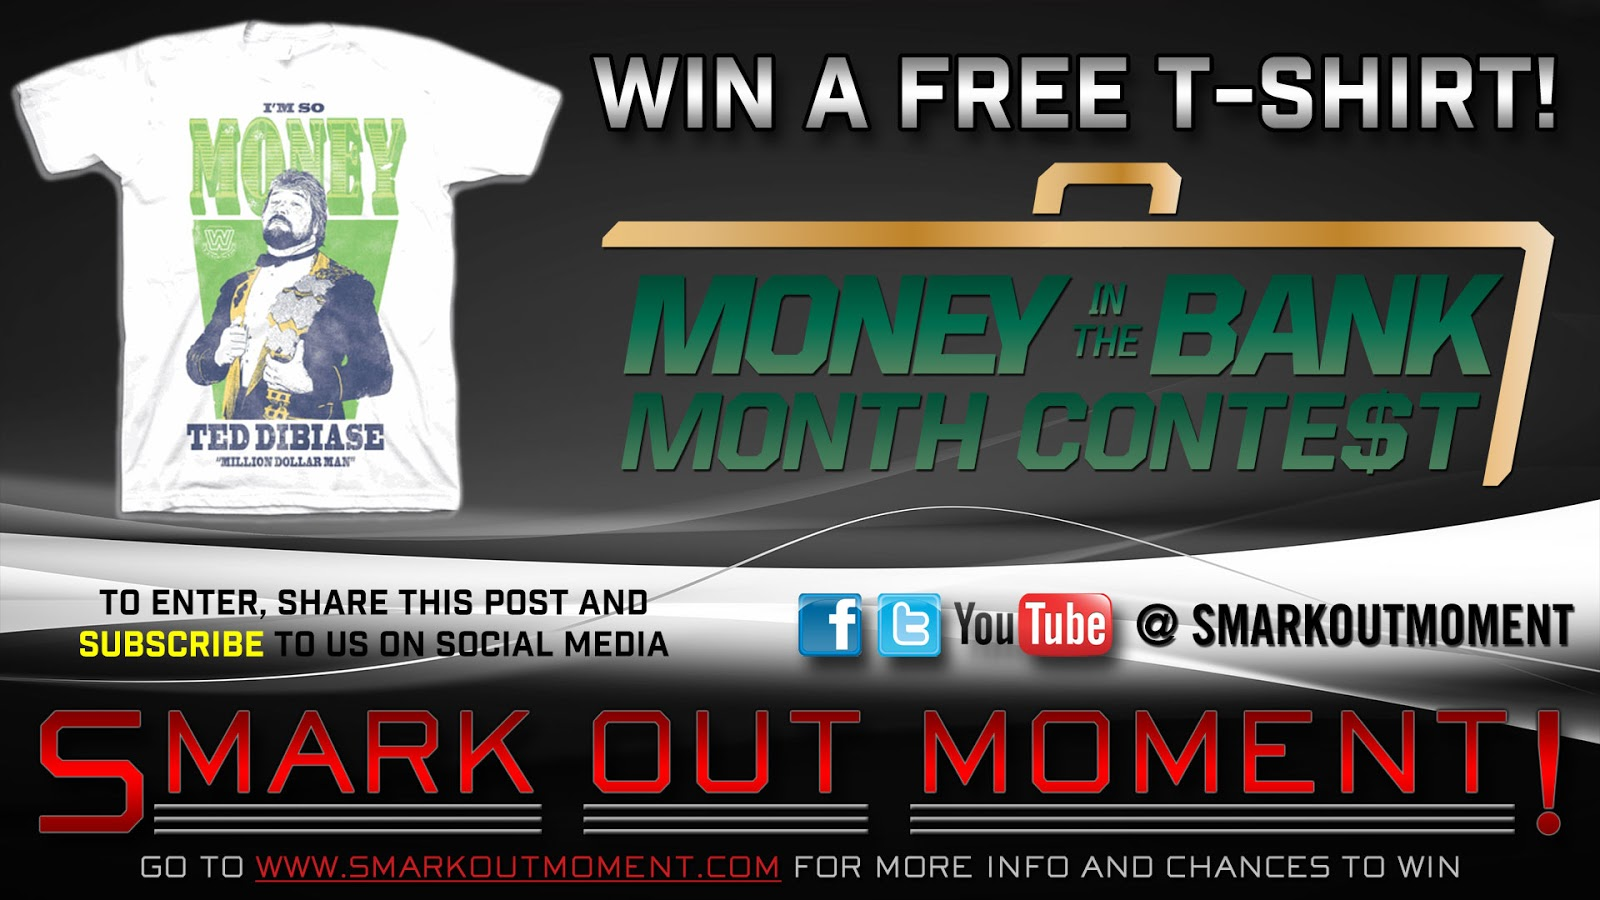 win a free WWE t-shirt by subscribing to Smark Out Moment